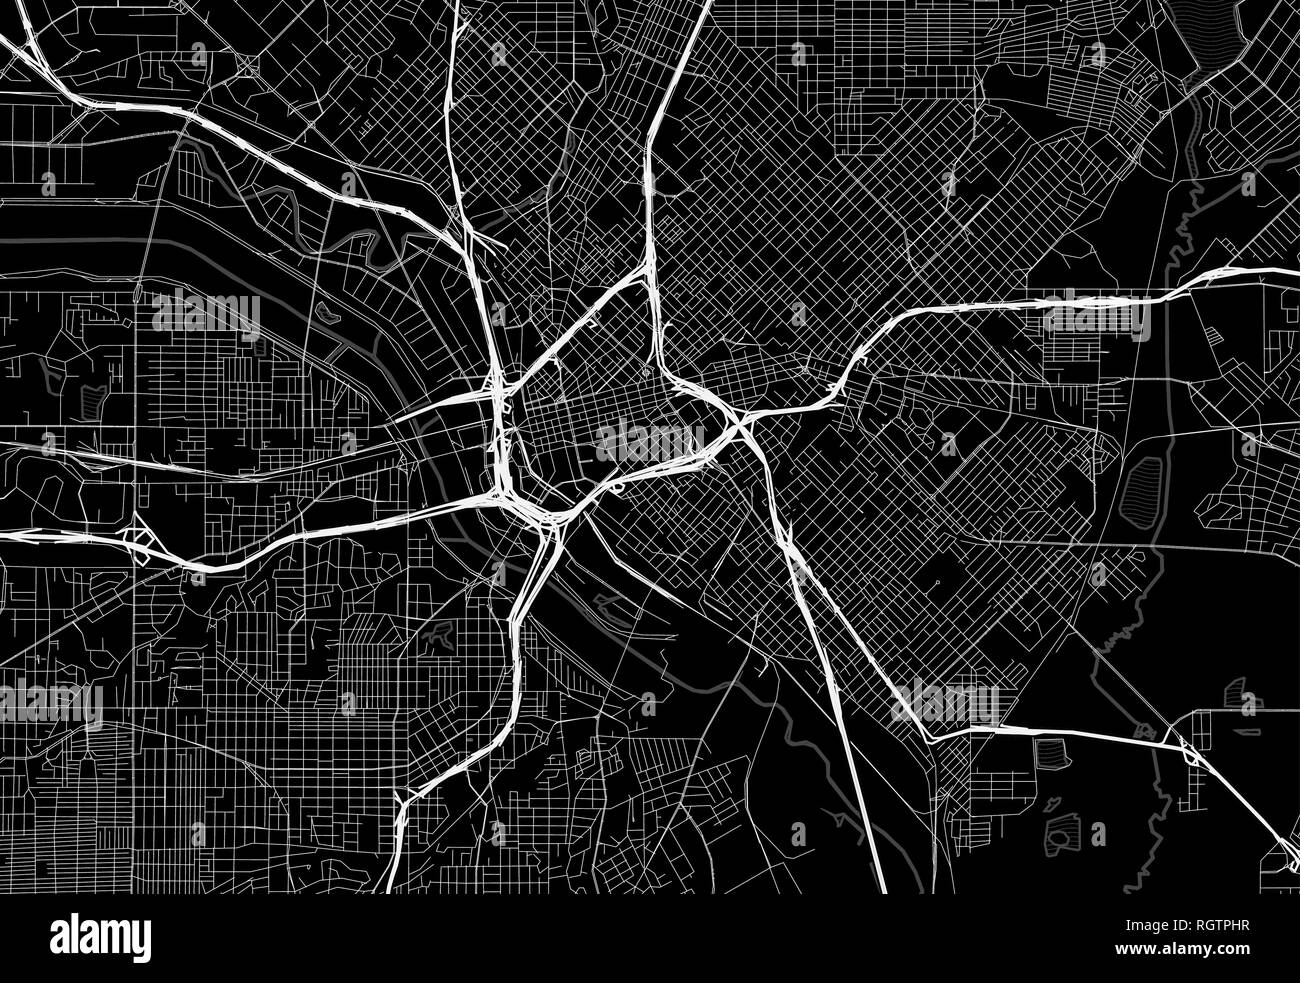 Black map of downtown Dallas, U.S.A. This vector artmap is created as a decorative background or a unique travel sign. - Stock Vector